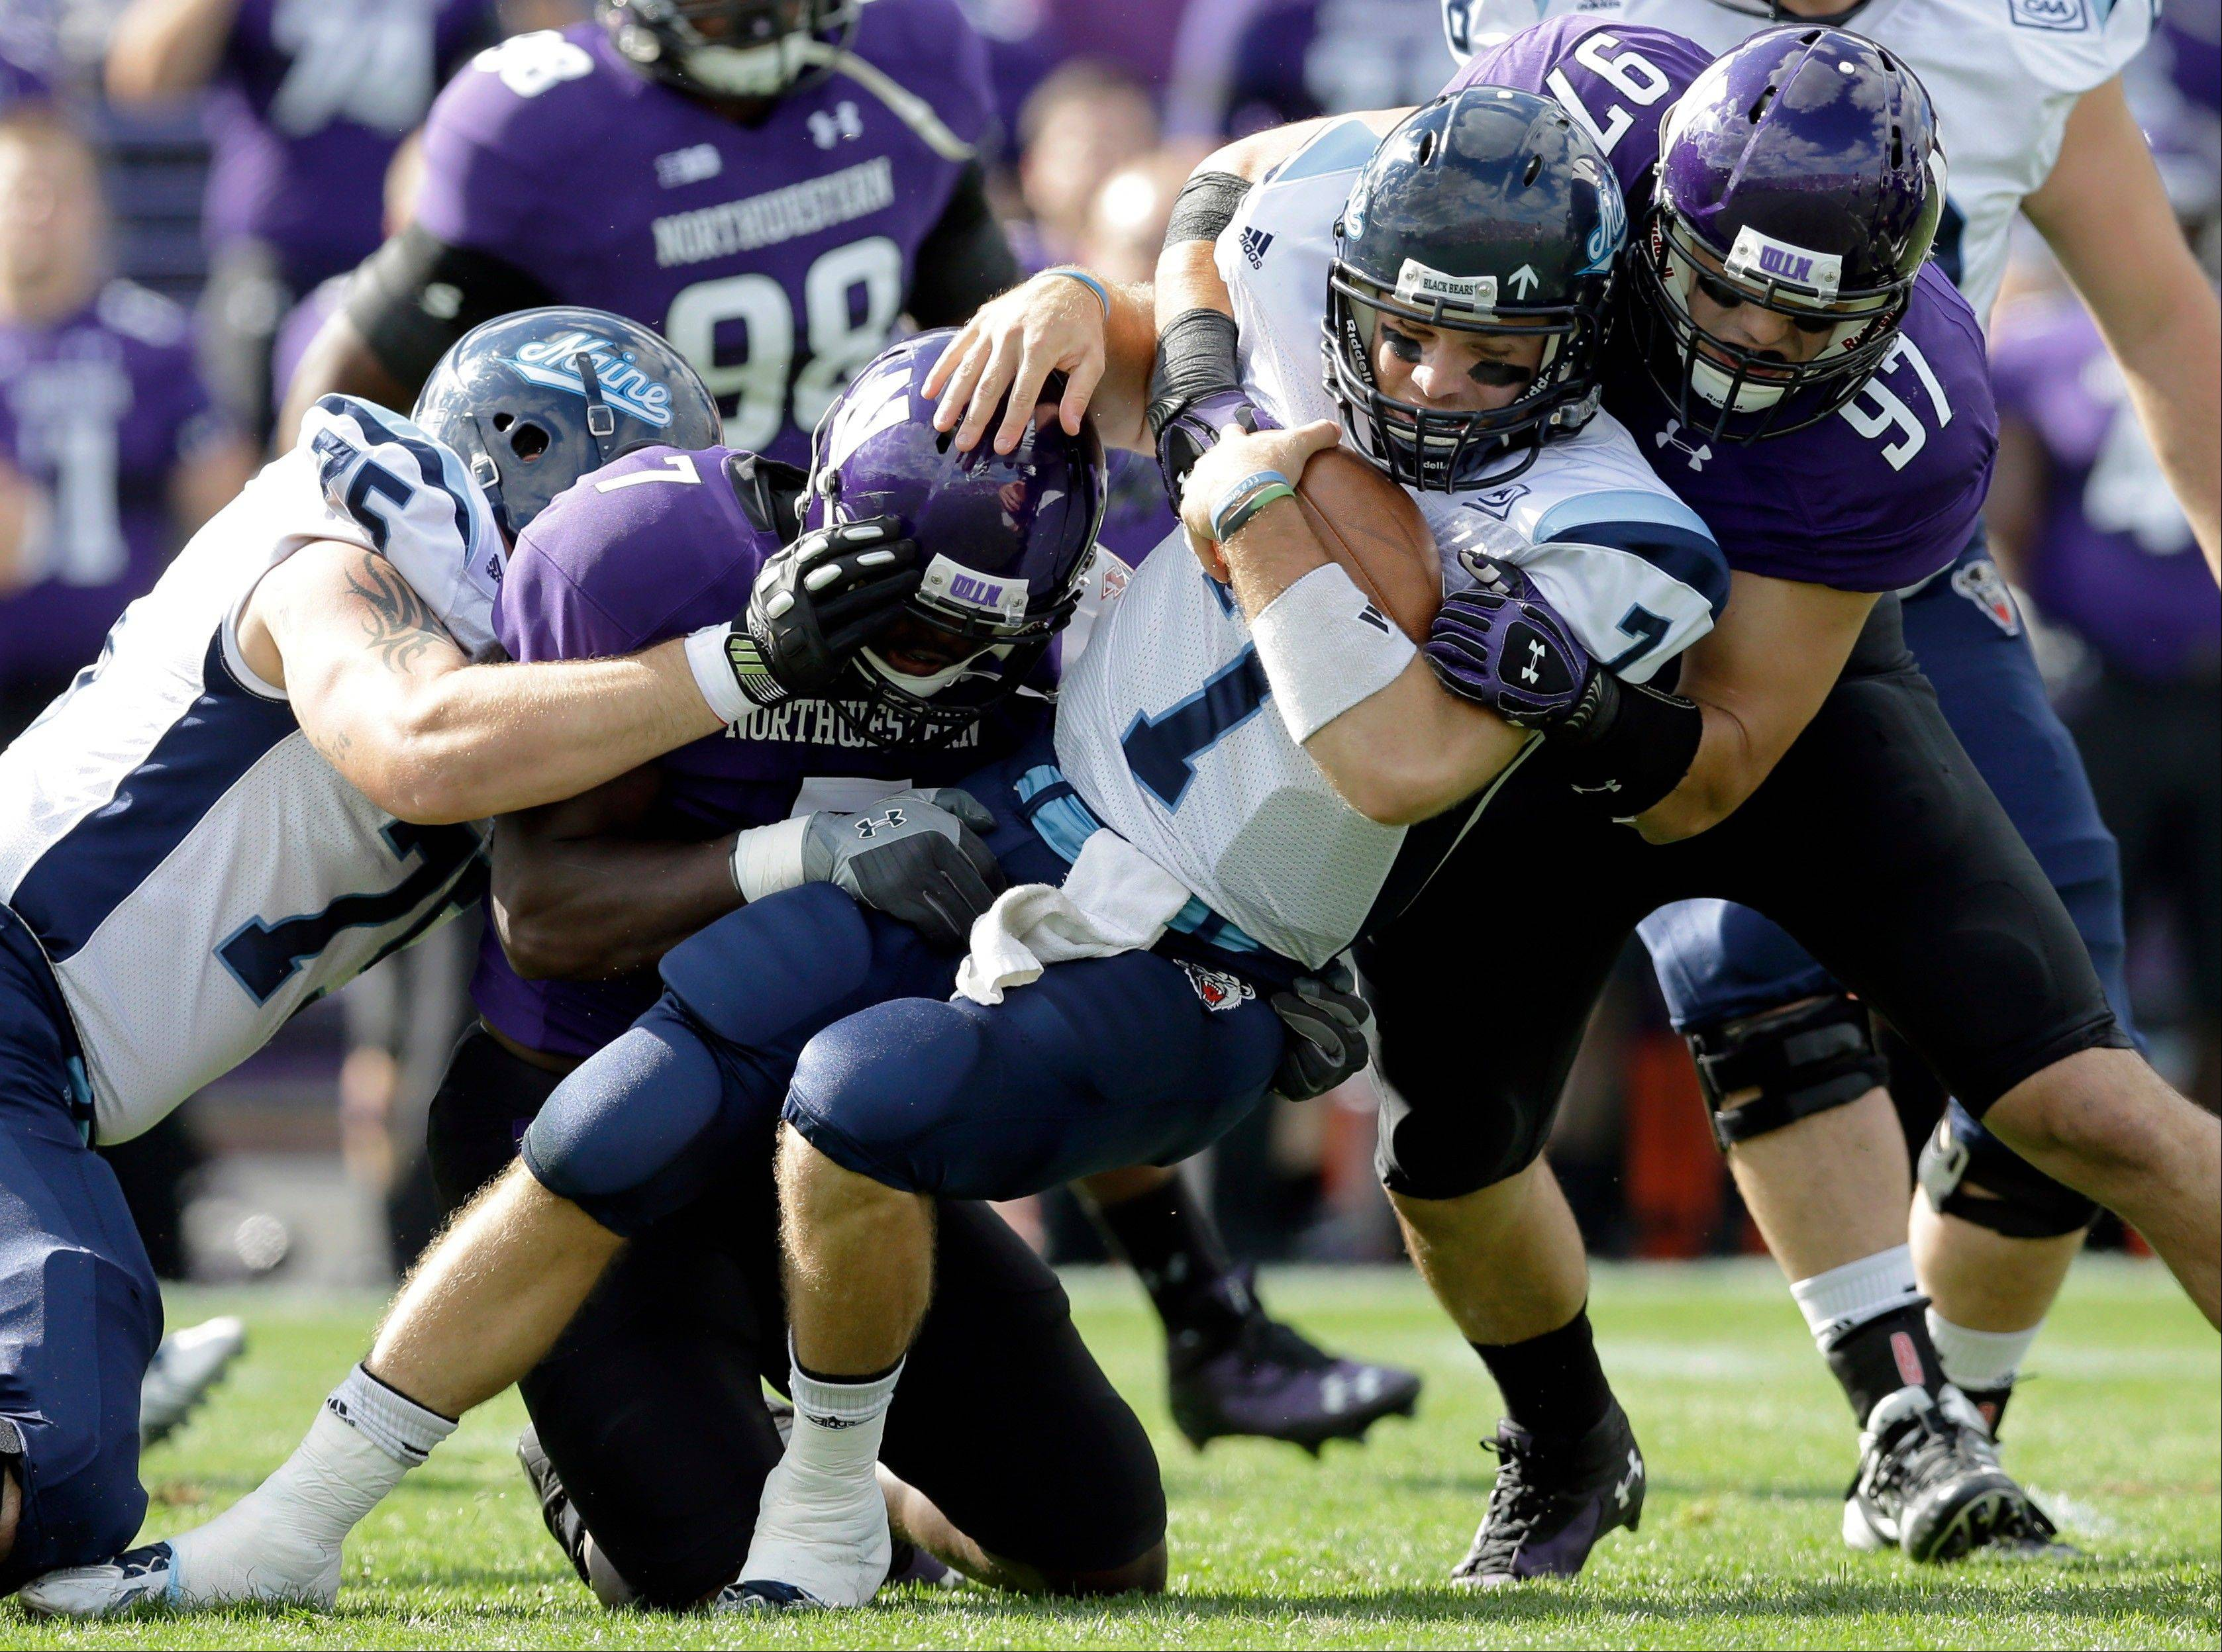 Maine quarterback Marcus Wasilewski is tackled by Northwestern's Ifeadi Odenigbo (7) and Tyler Scott (97) during the first quarter of Saturday's game in Evanston.